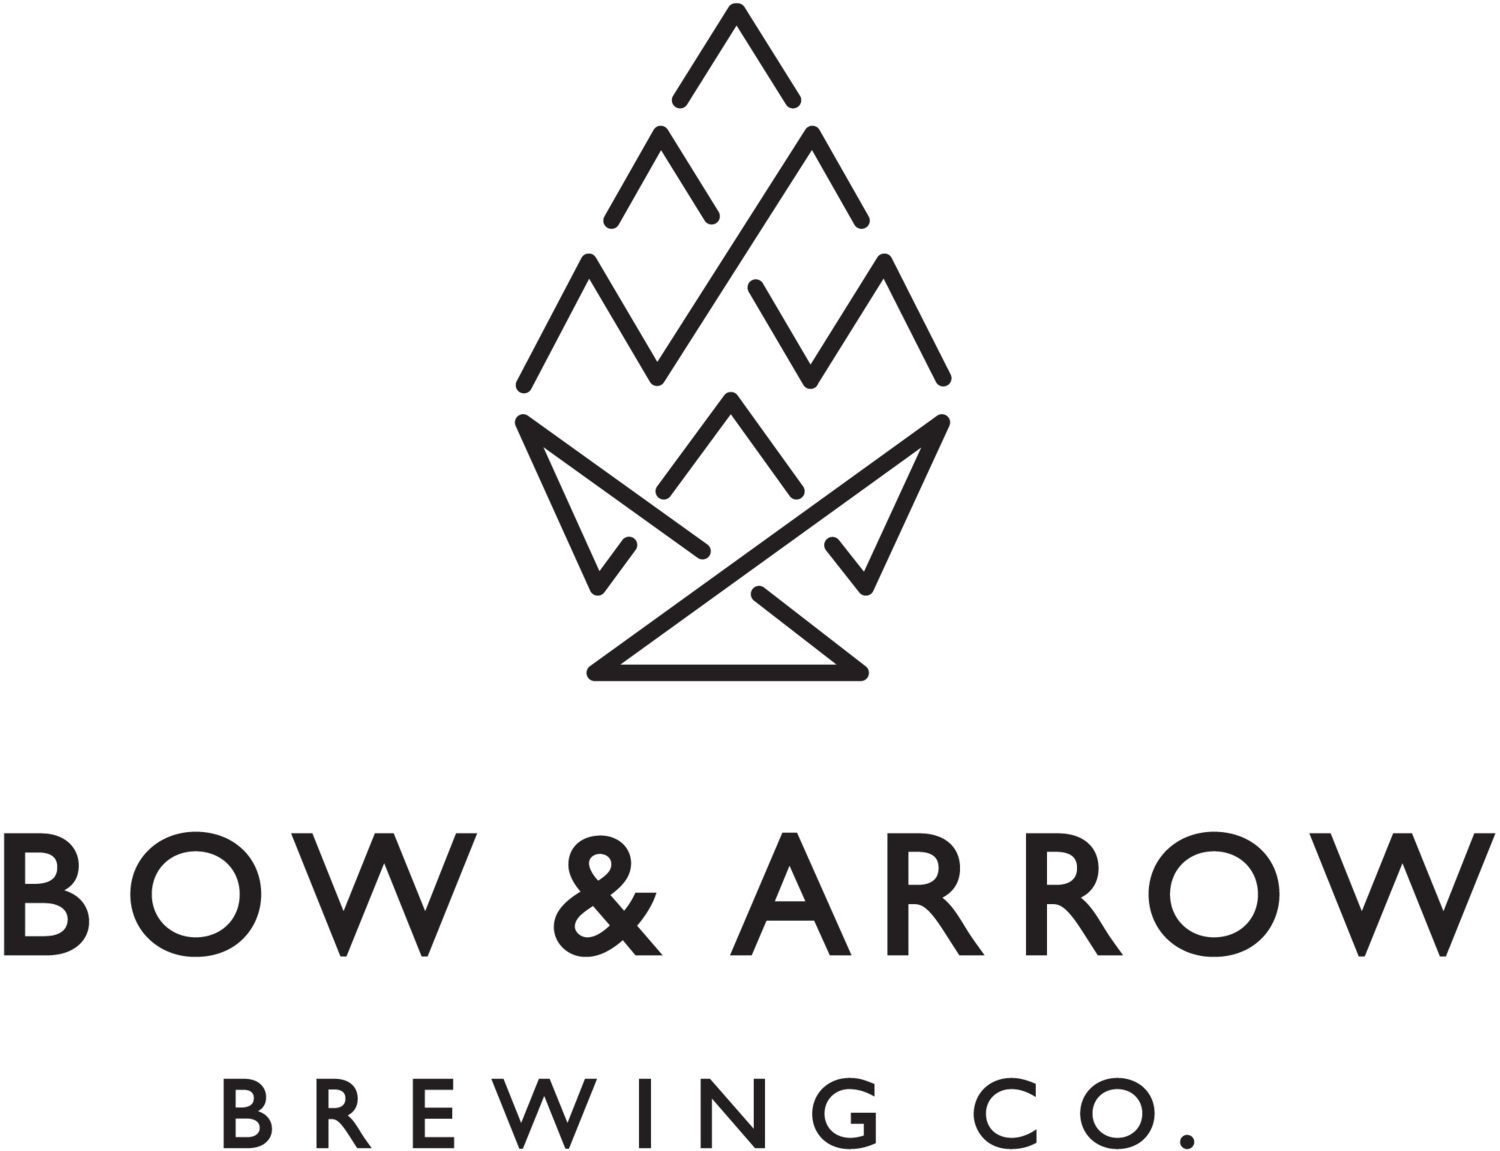 Picture of arrow jpg free library Bow & Arrow Brewing Co. jpg free library